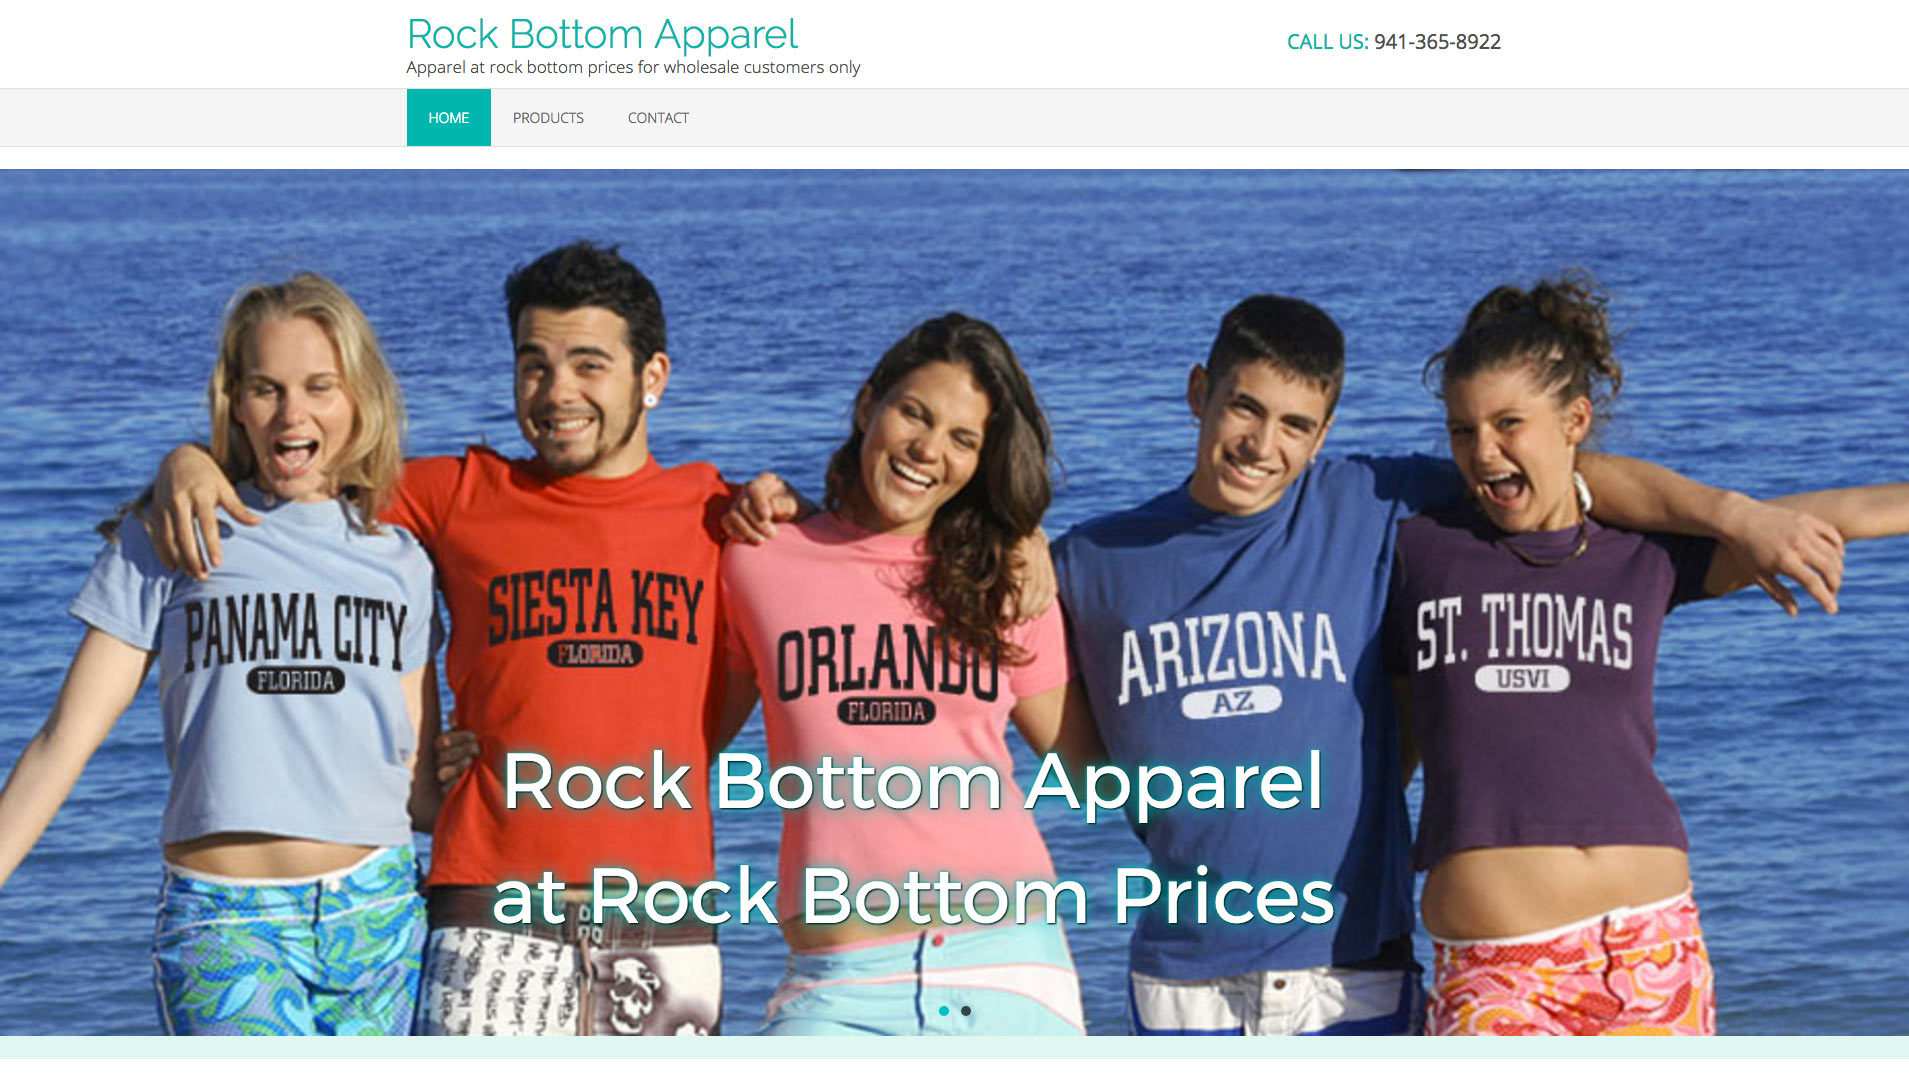 Rock Bottom Apparel - www.rockbottomapp.com